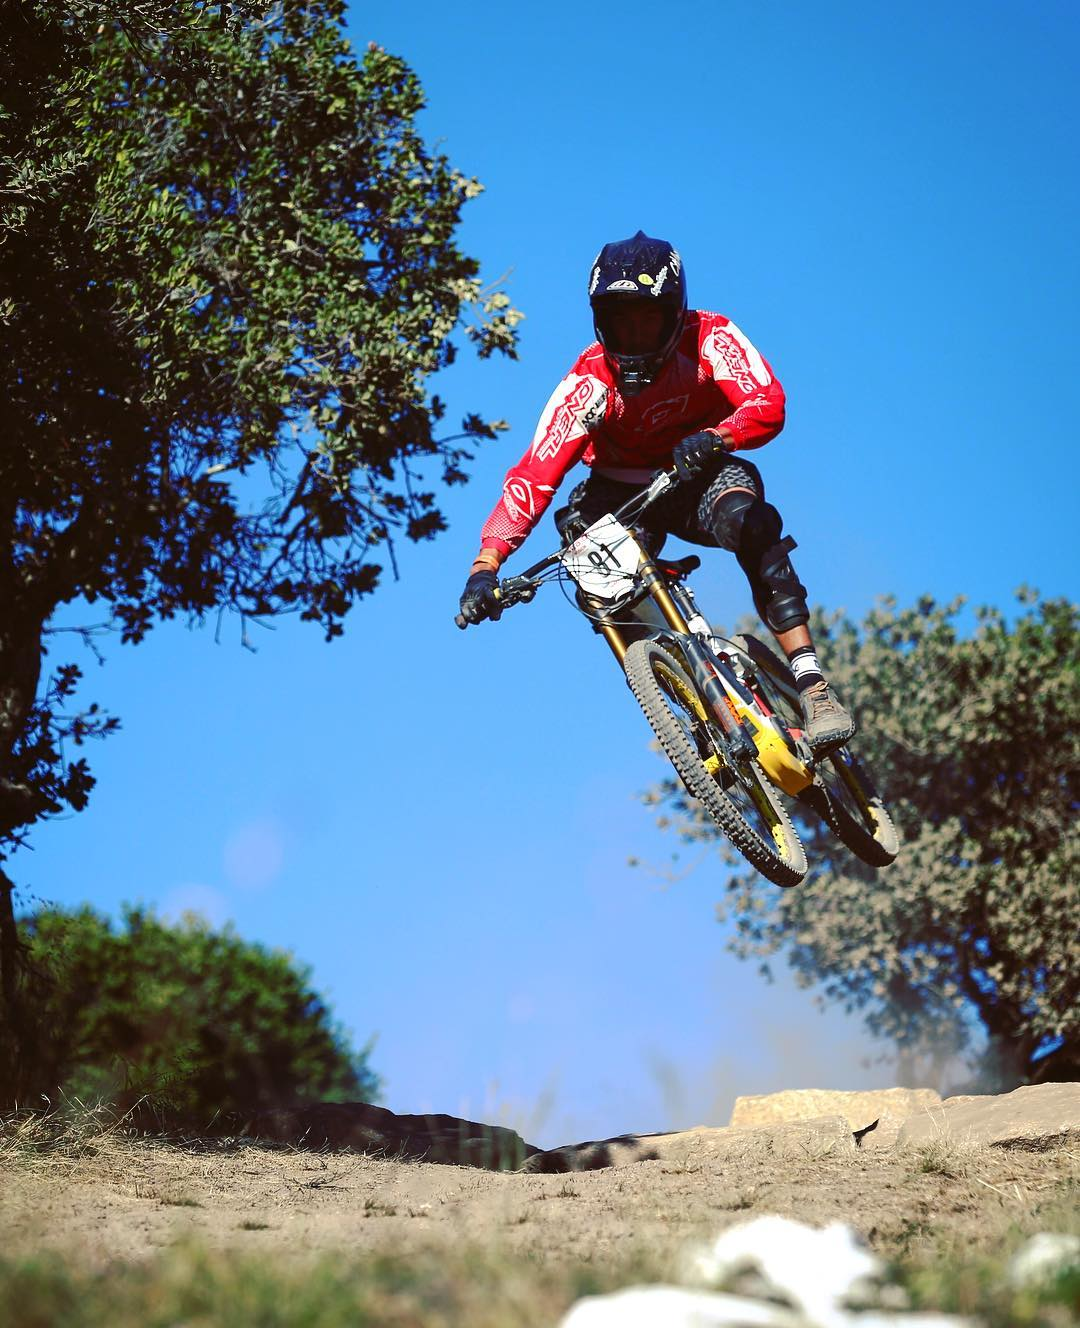 The rock garden on the #eMTB #XC race track at #seaotterclassic was causing some people a few problems on their hard tails. The #XDURO #dh on the other hand was loving it! @ejko28 catching some air. #mtb